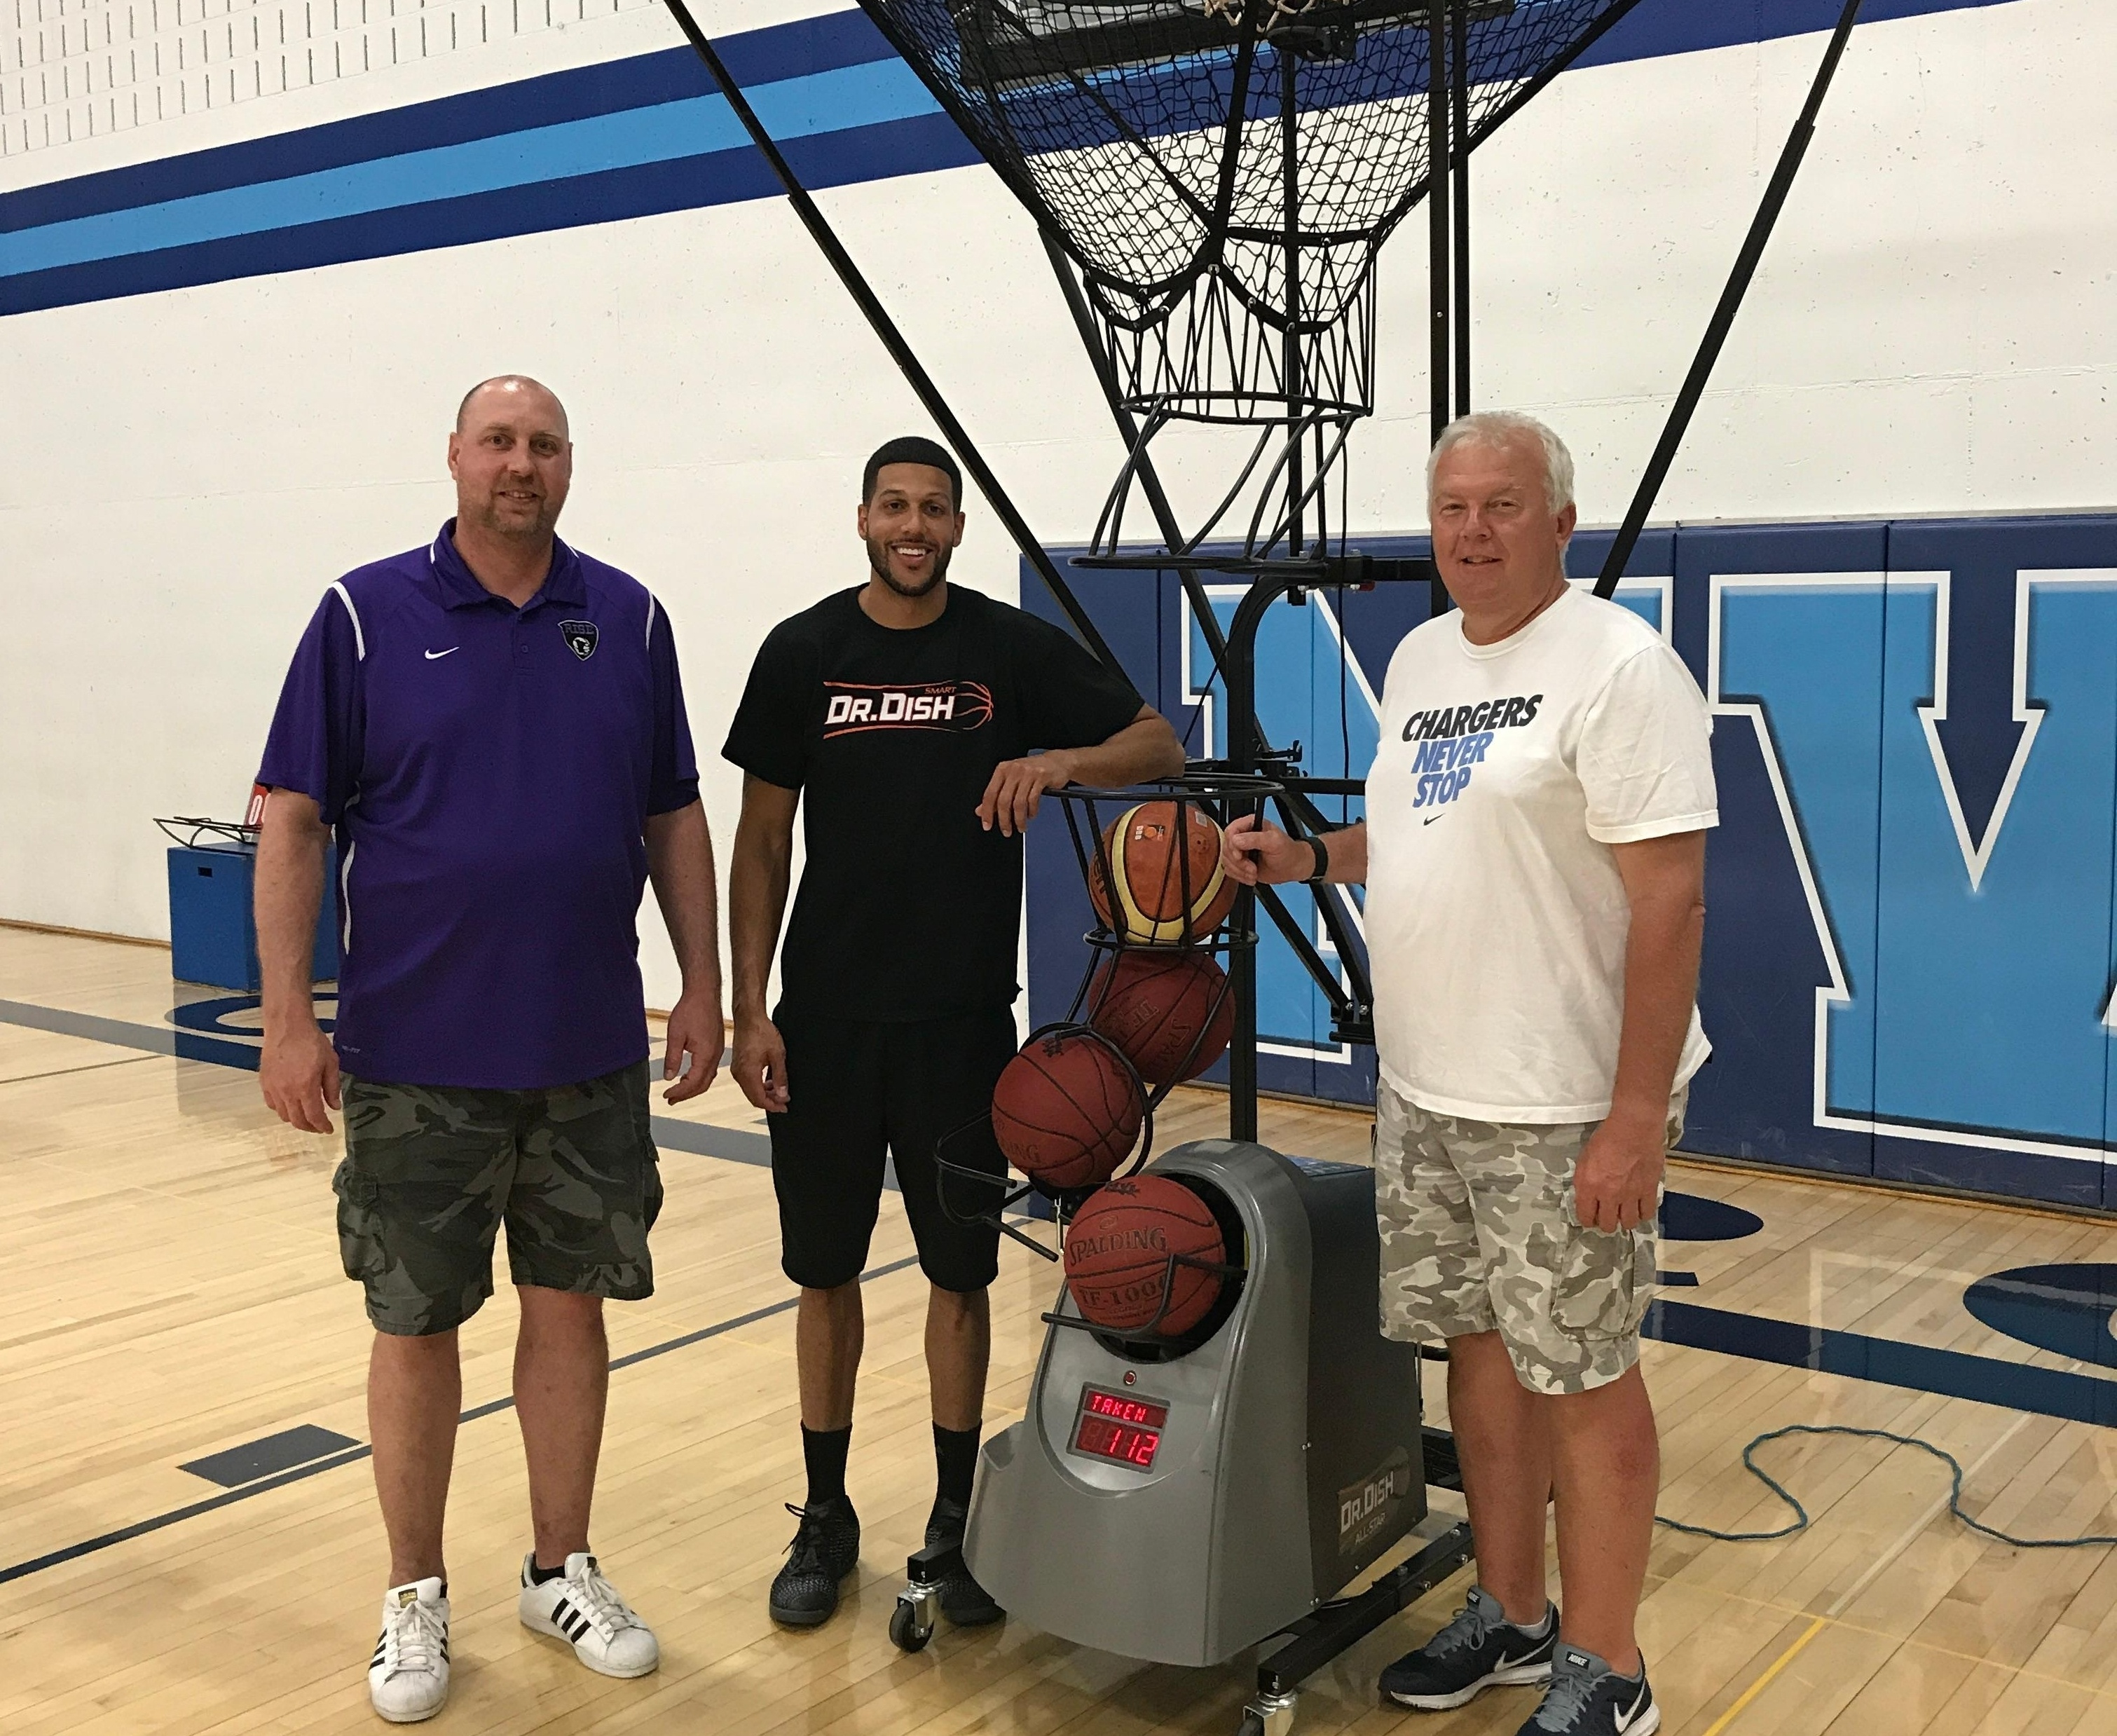 Coach Mason Hosts Dr. Dish Clinic For Local High School